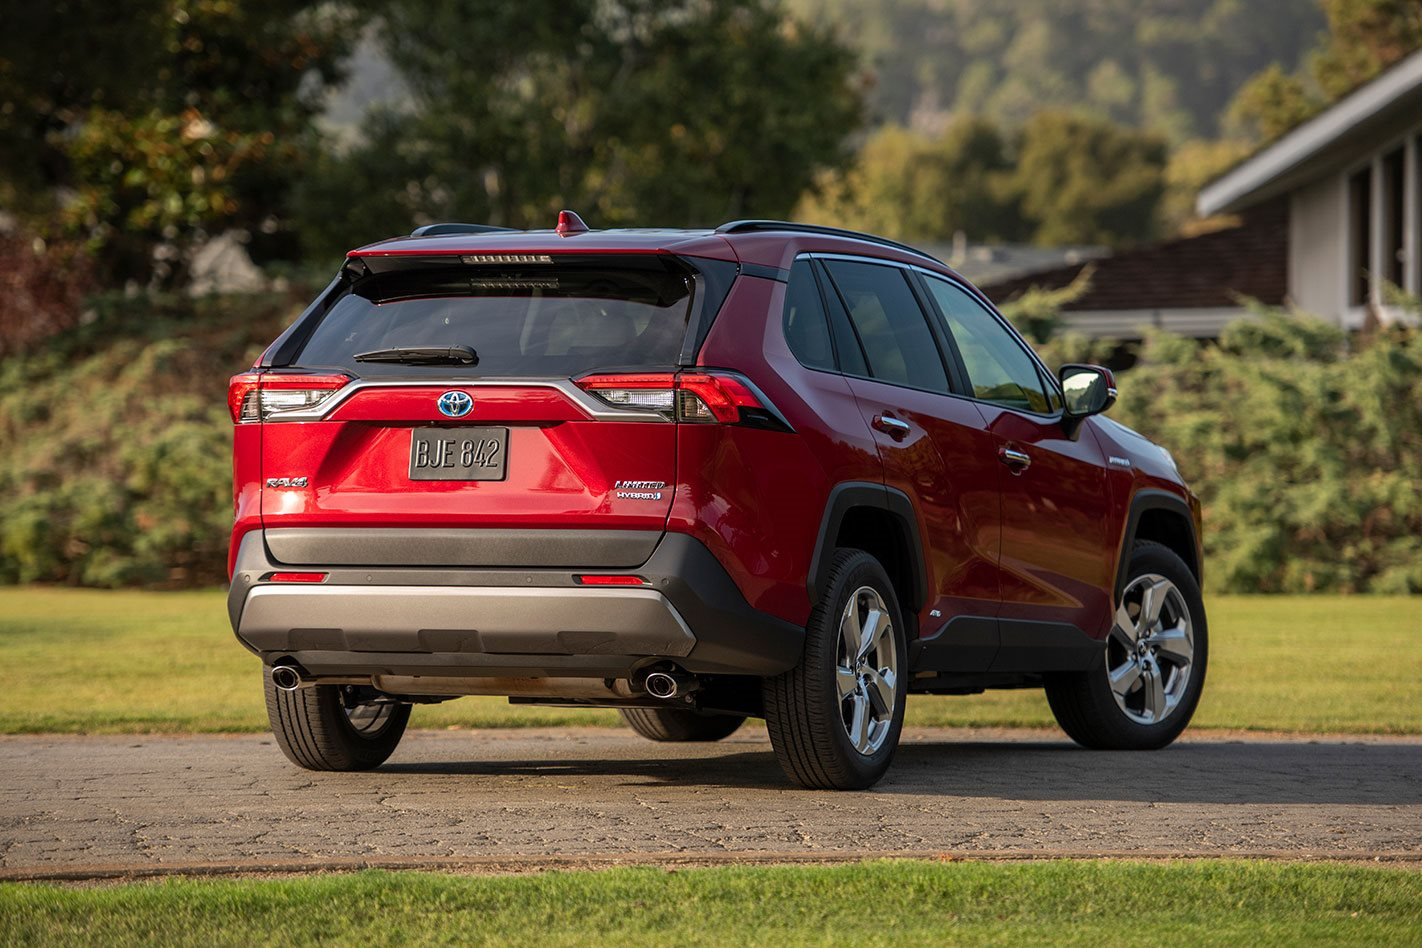 All-new Toyota RAV4 is the most accomplished Toyota SUV yet